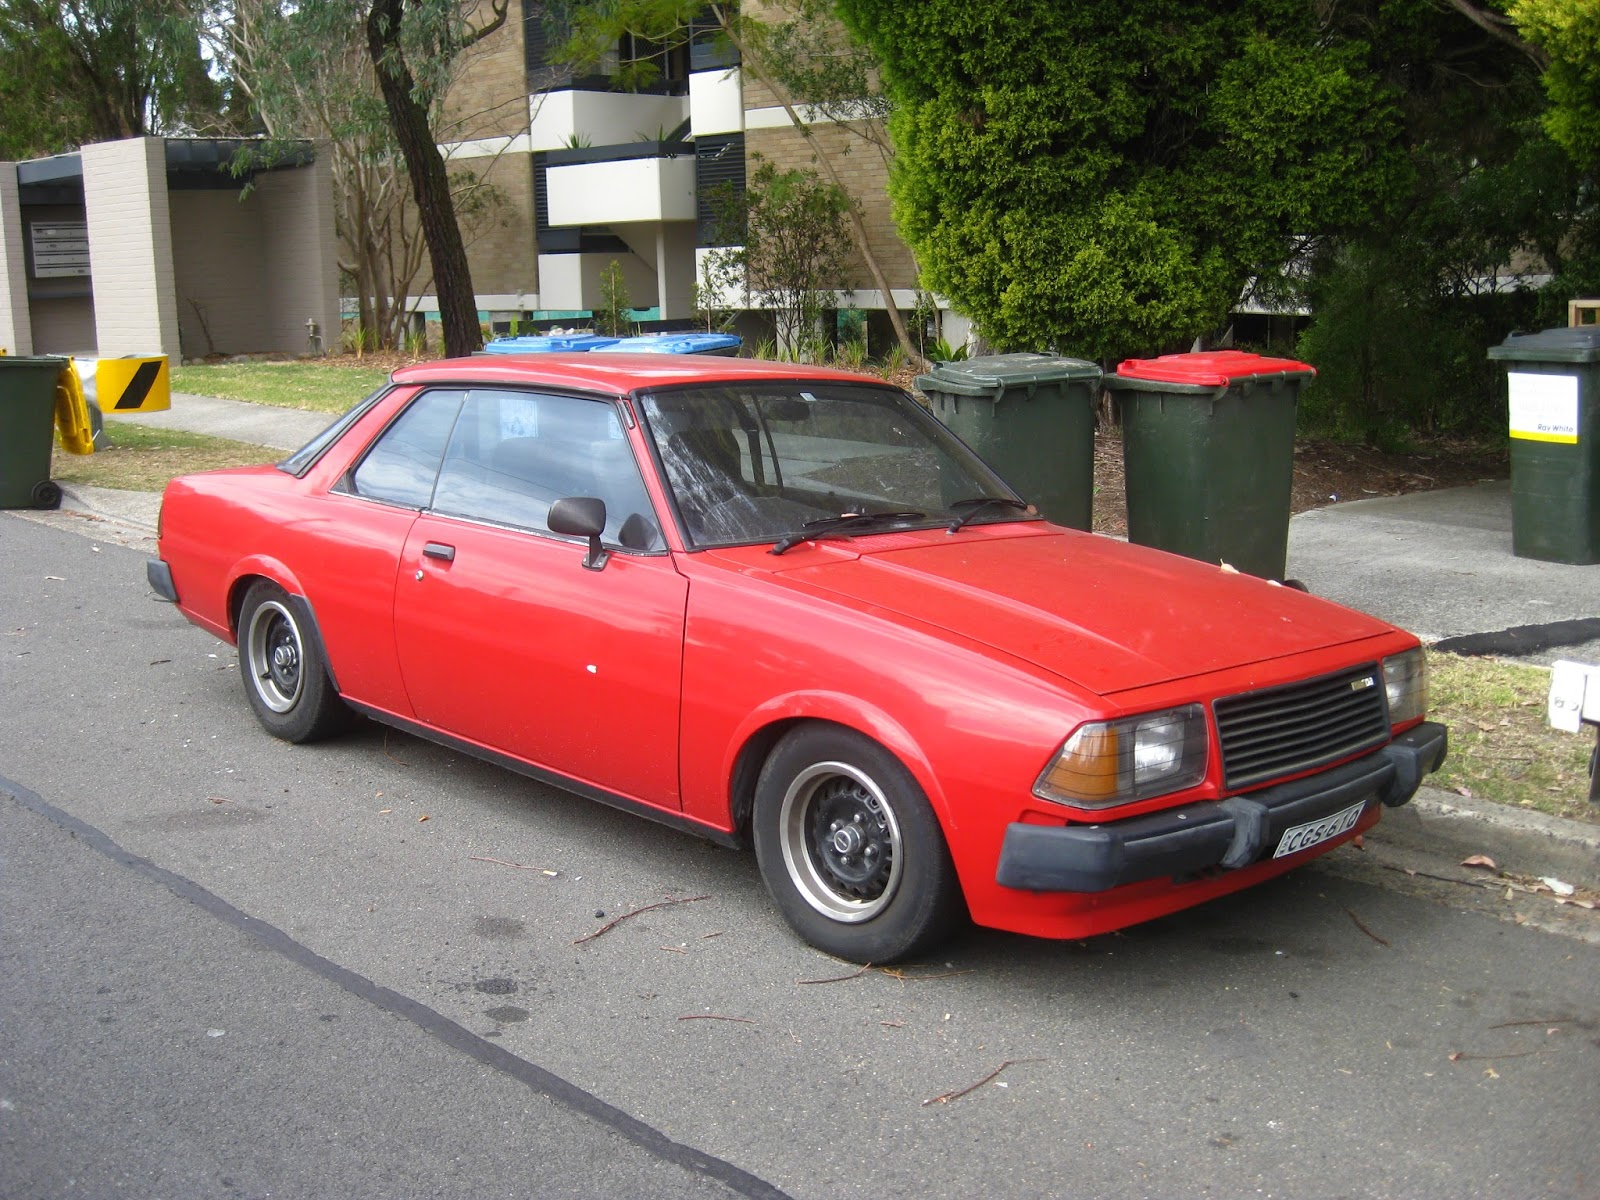 Aussie Old Parked Cars: 1979 Mazda 626 Coupe